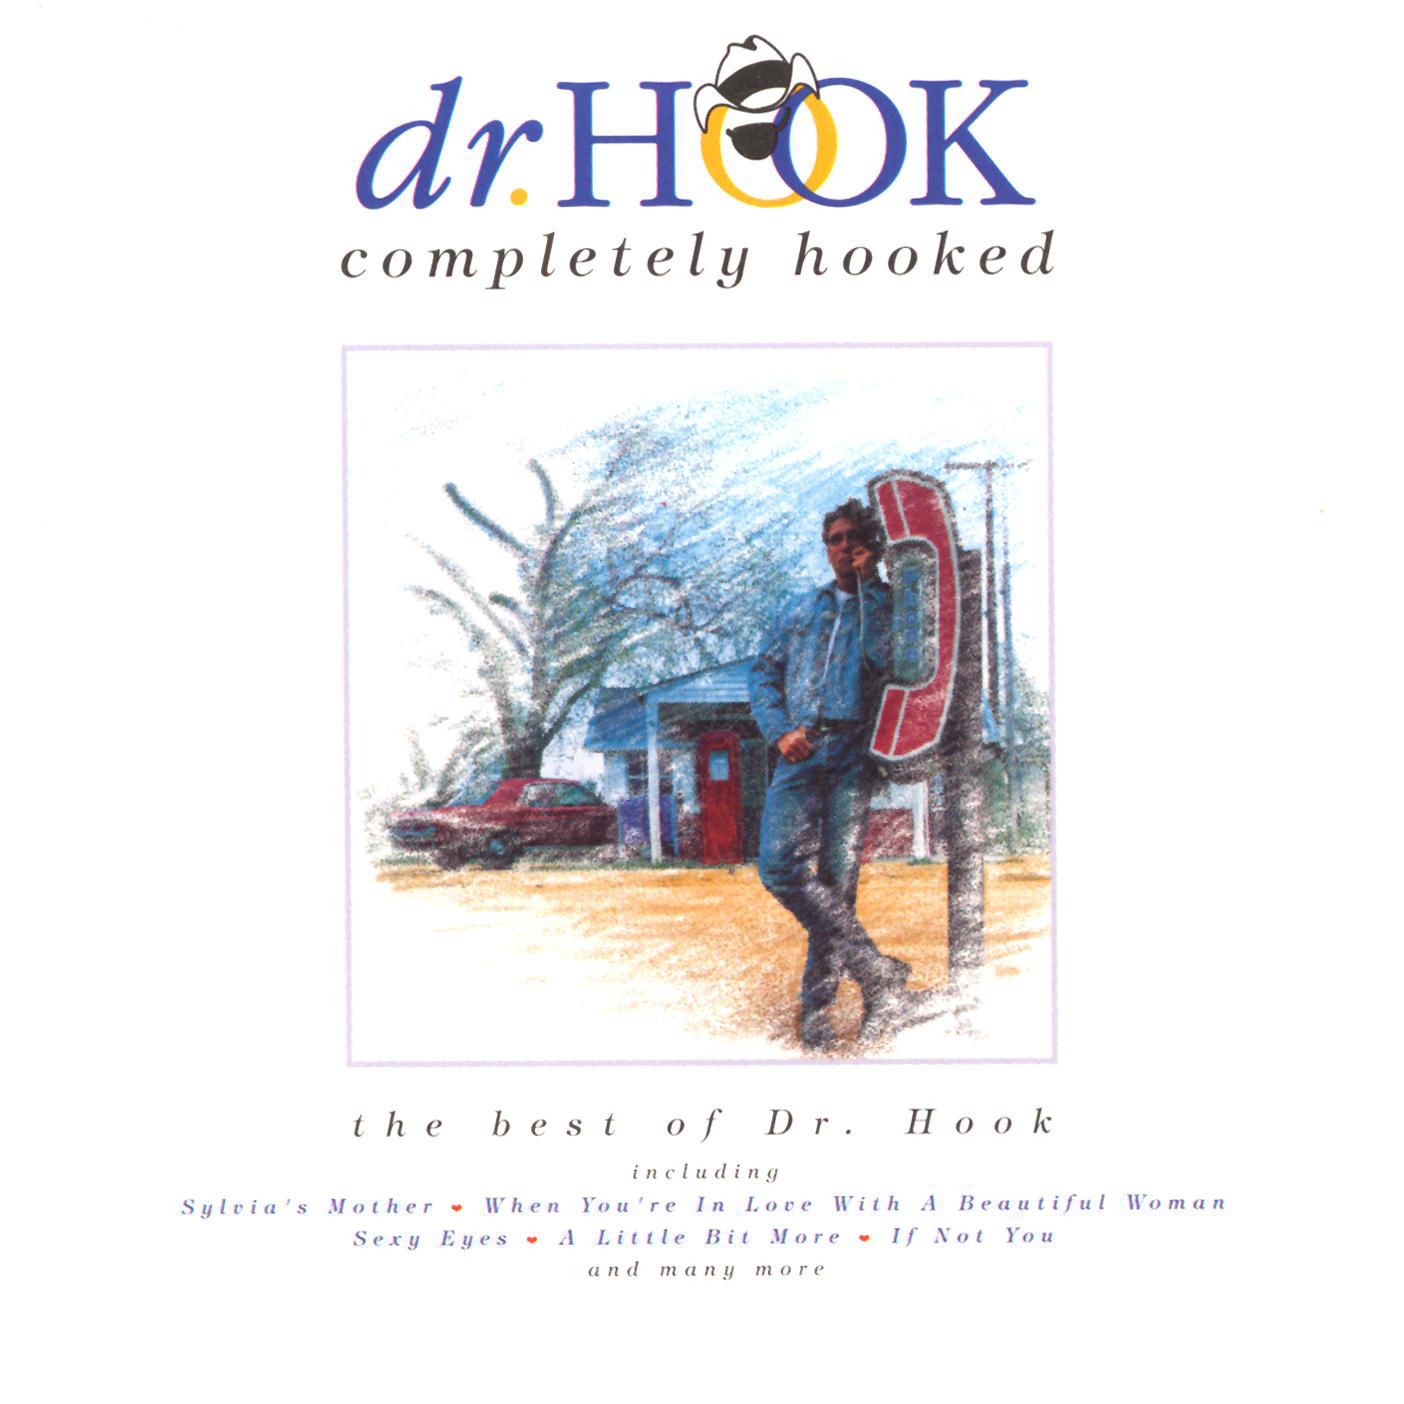 Completely Hooked - Dr. Hook on  image